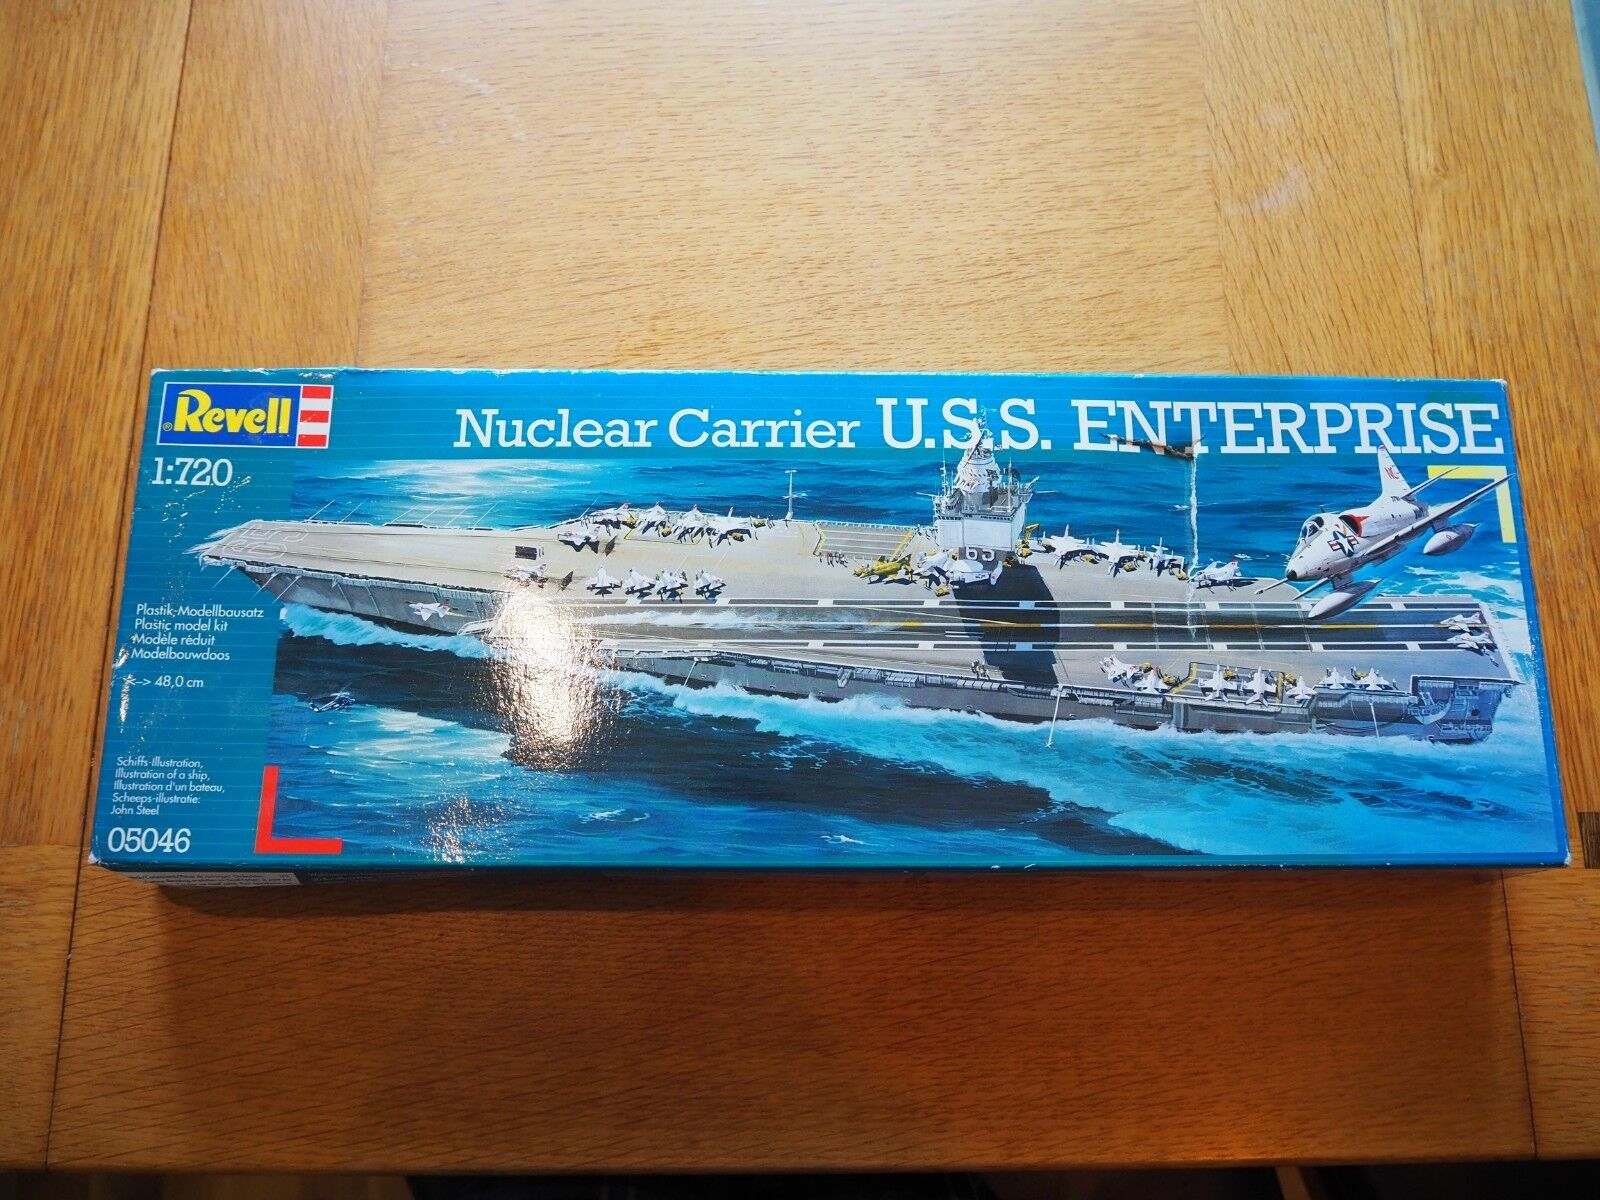 Revell 05046 USS Enterprise Nuclear Carrier 1 720 Scale